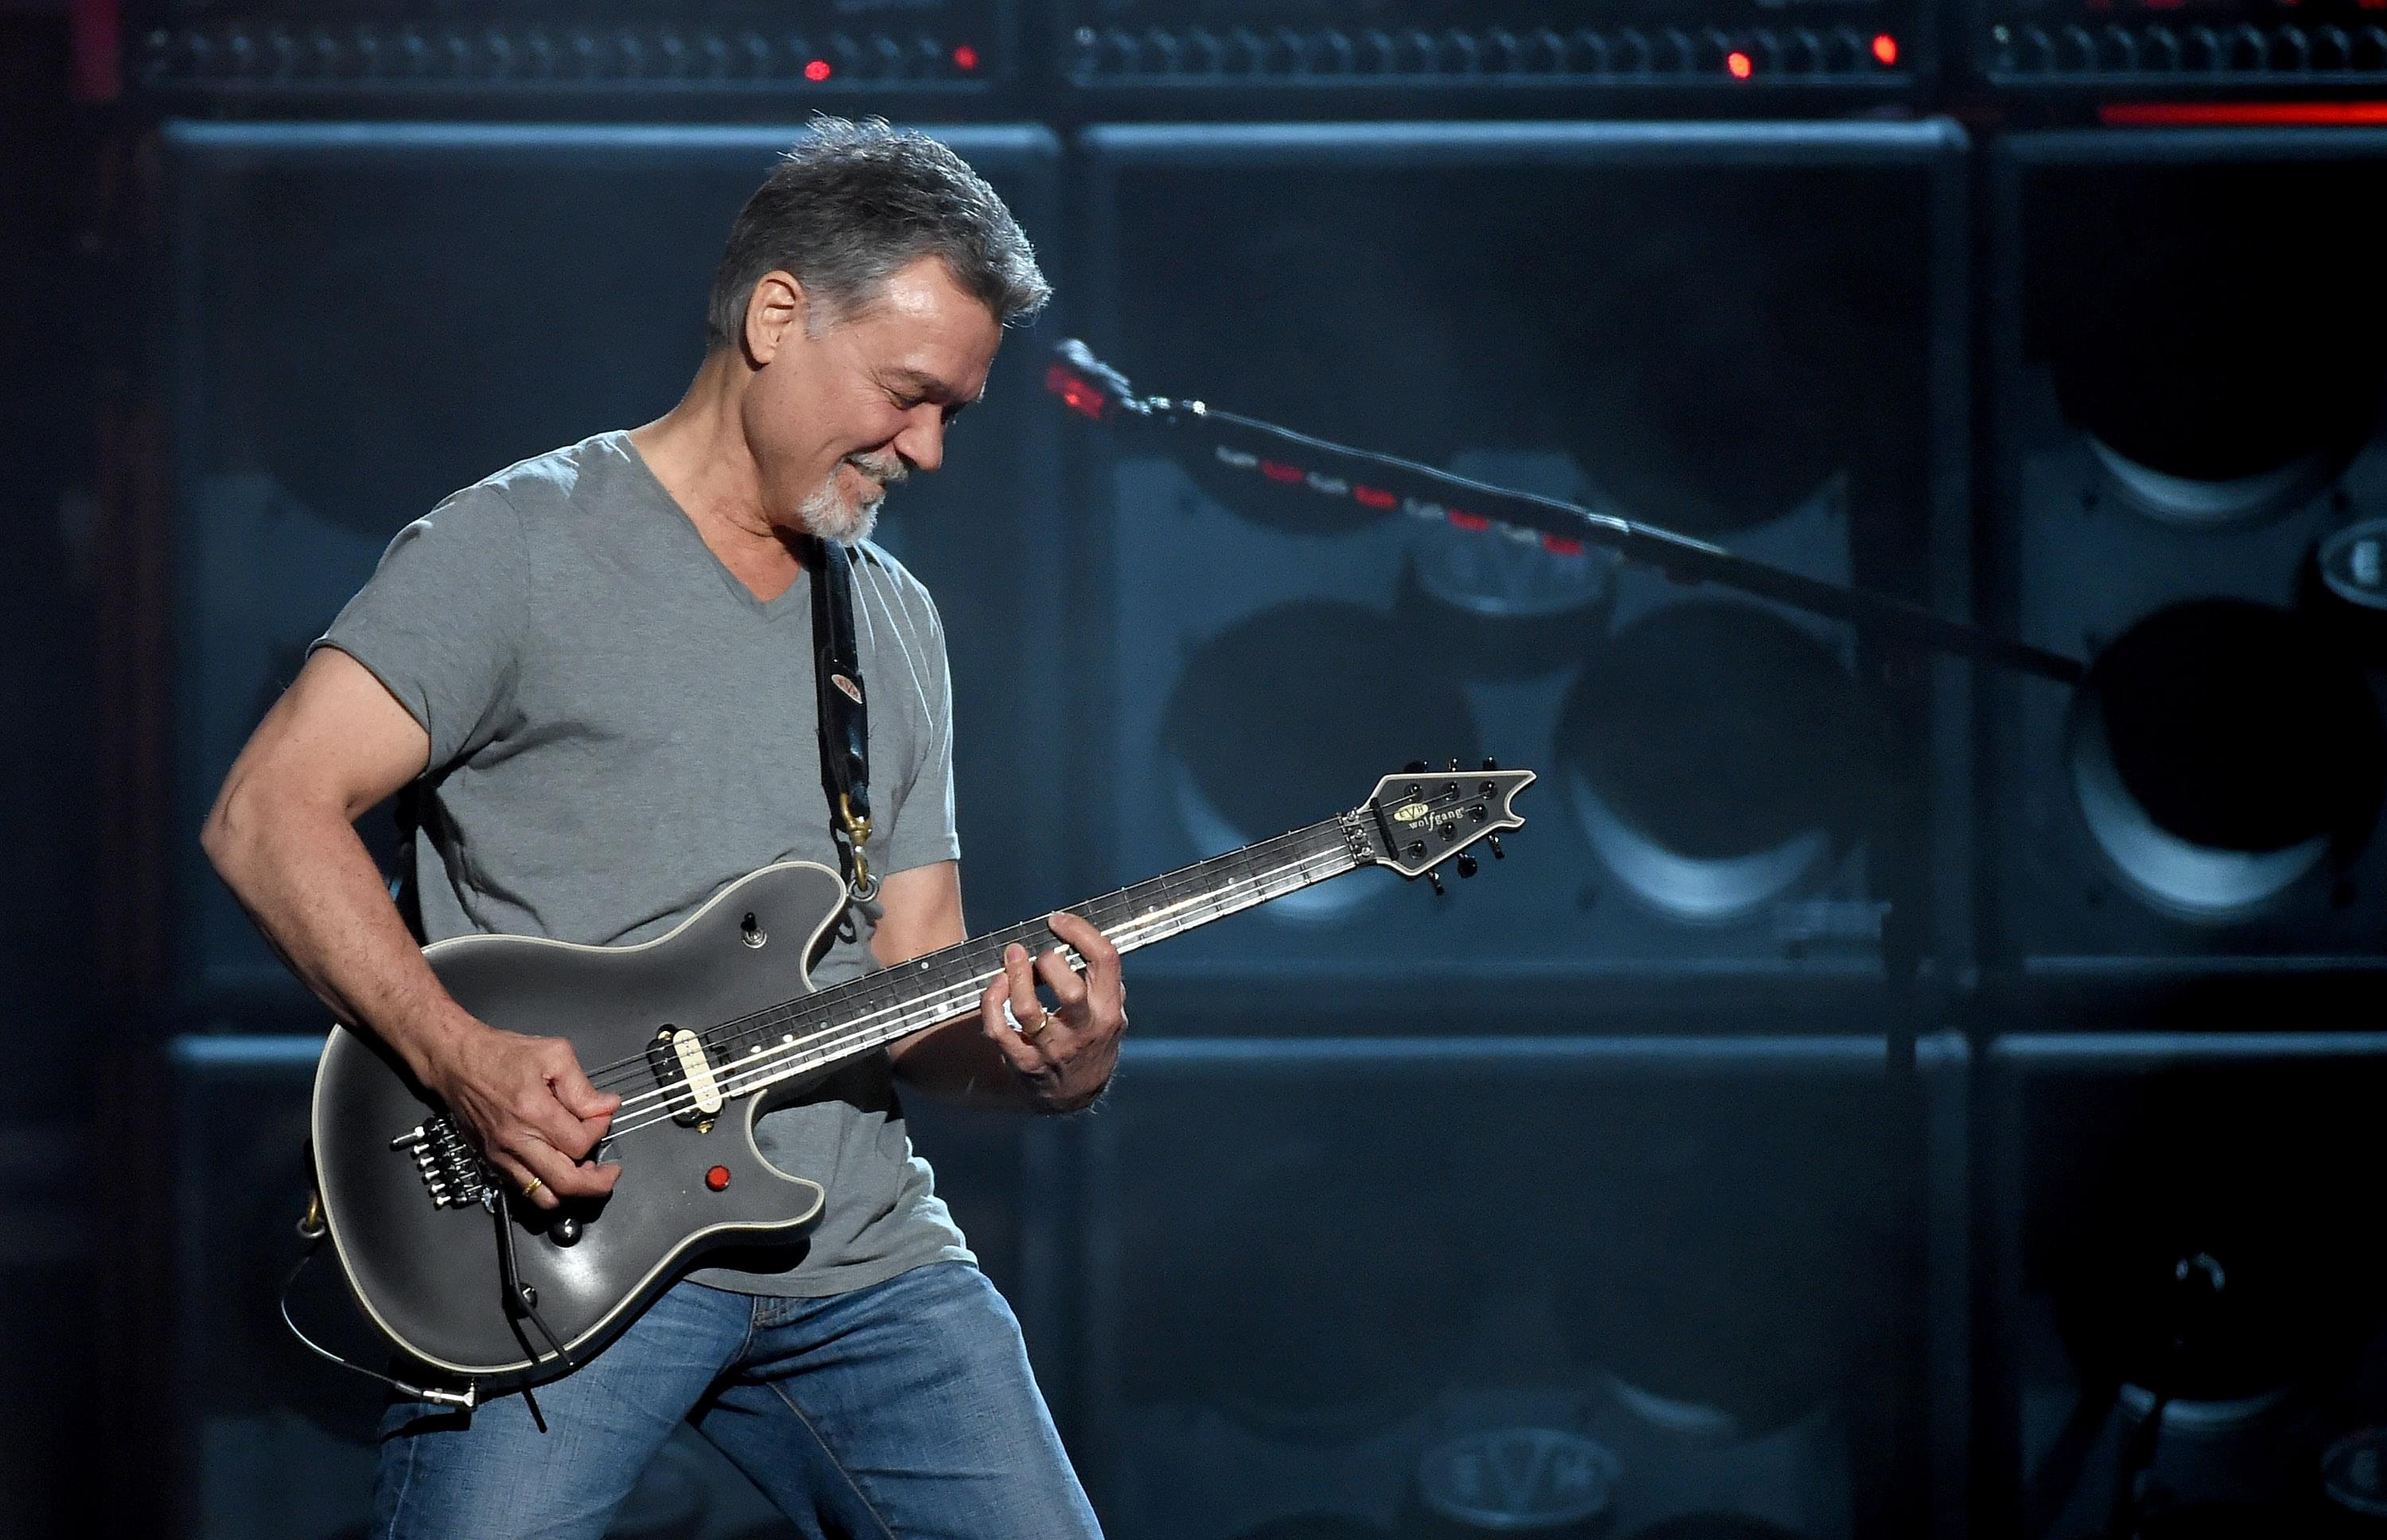 UPDATE: Eddie Van Halen appears happy and fit in new social media post